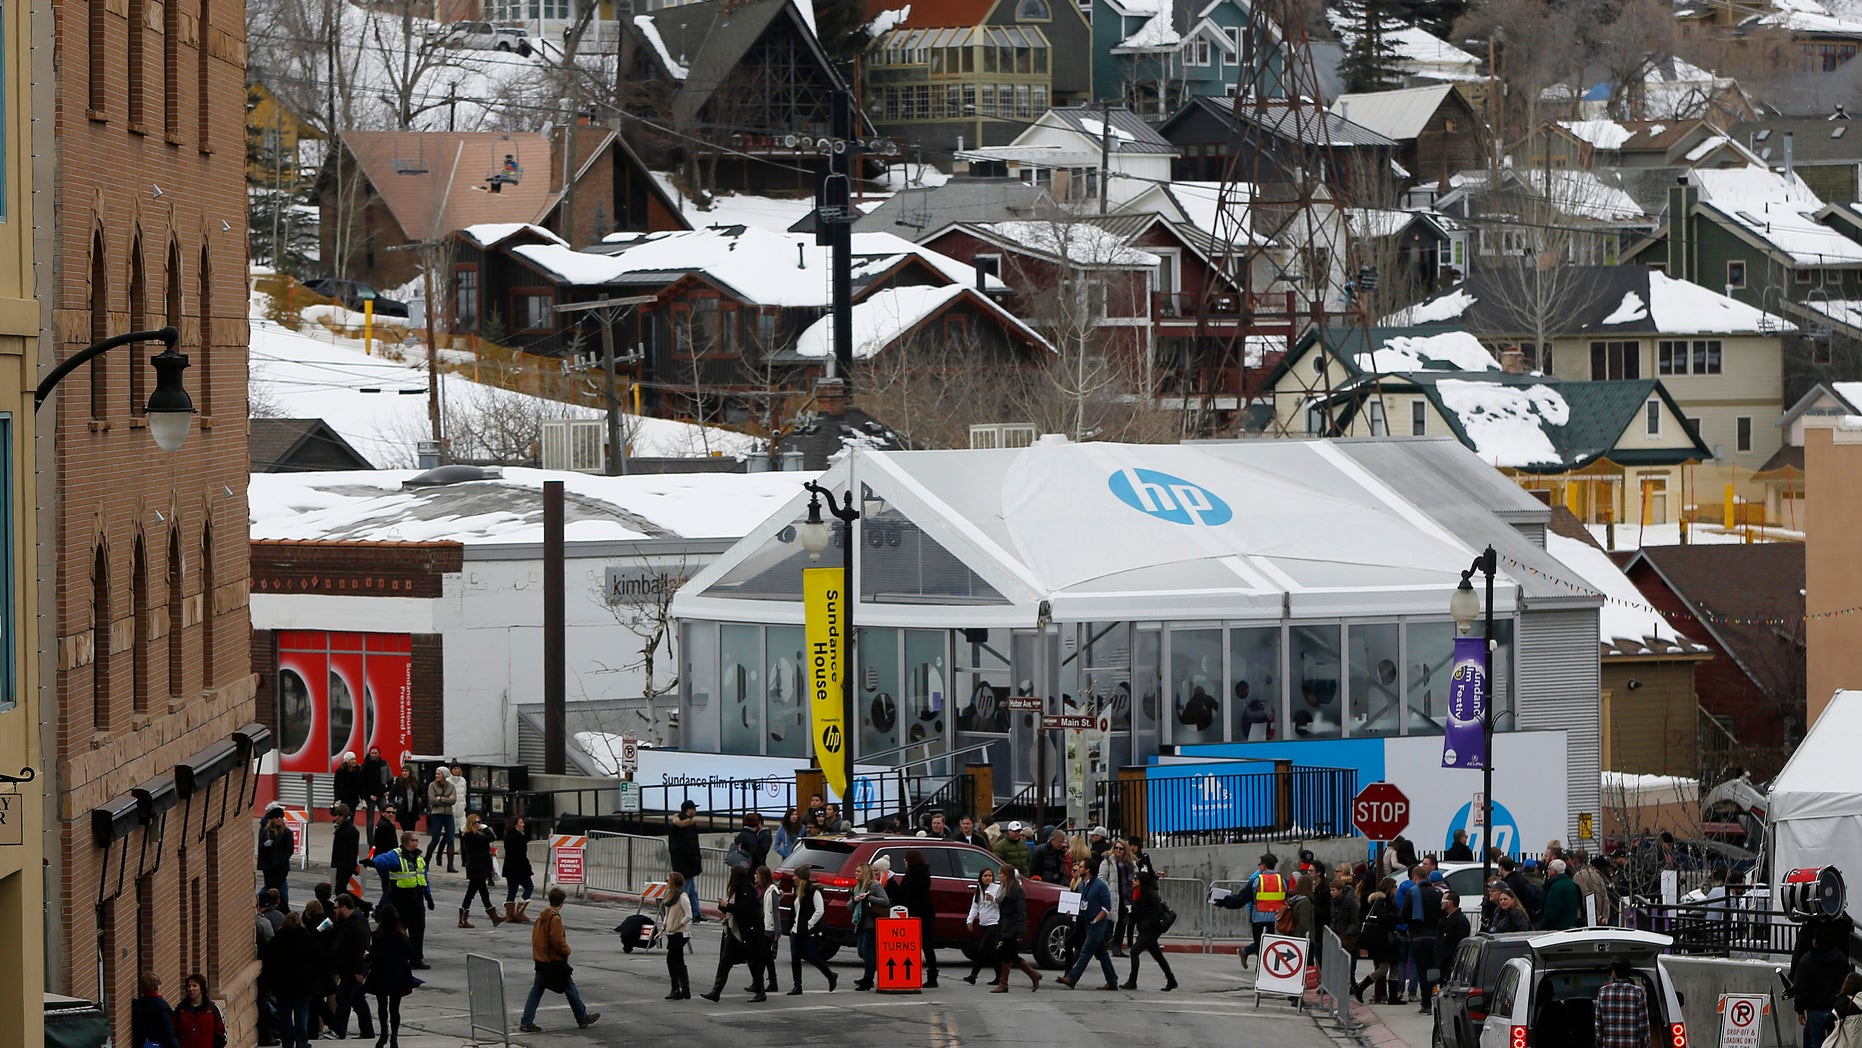 Pedestrians cross the street near skiers on a lift during Sundance Film Festival in Park City, Utah, January 24, 2015.